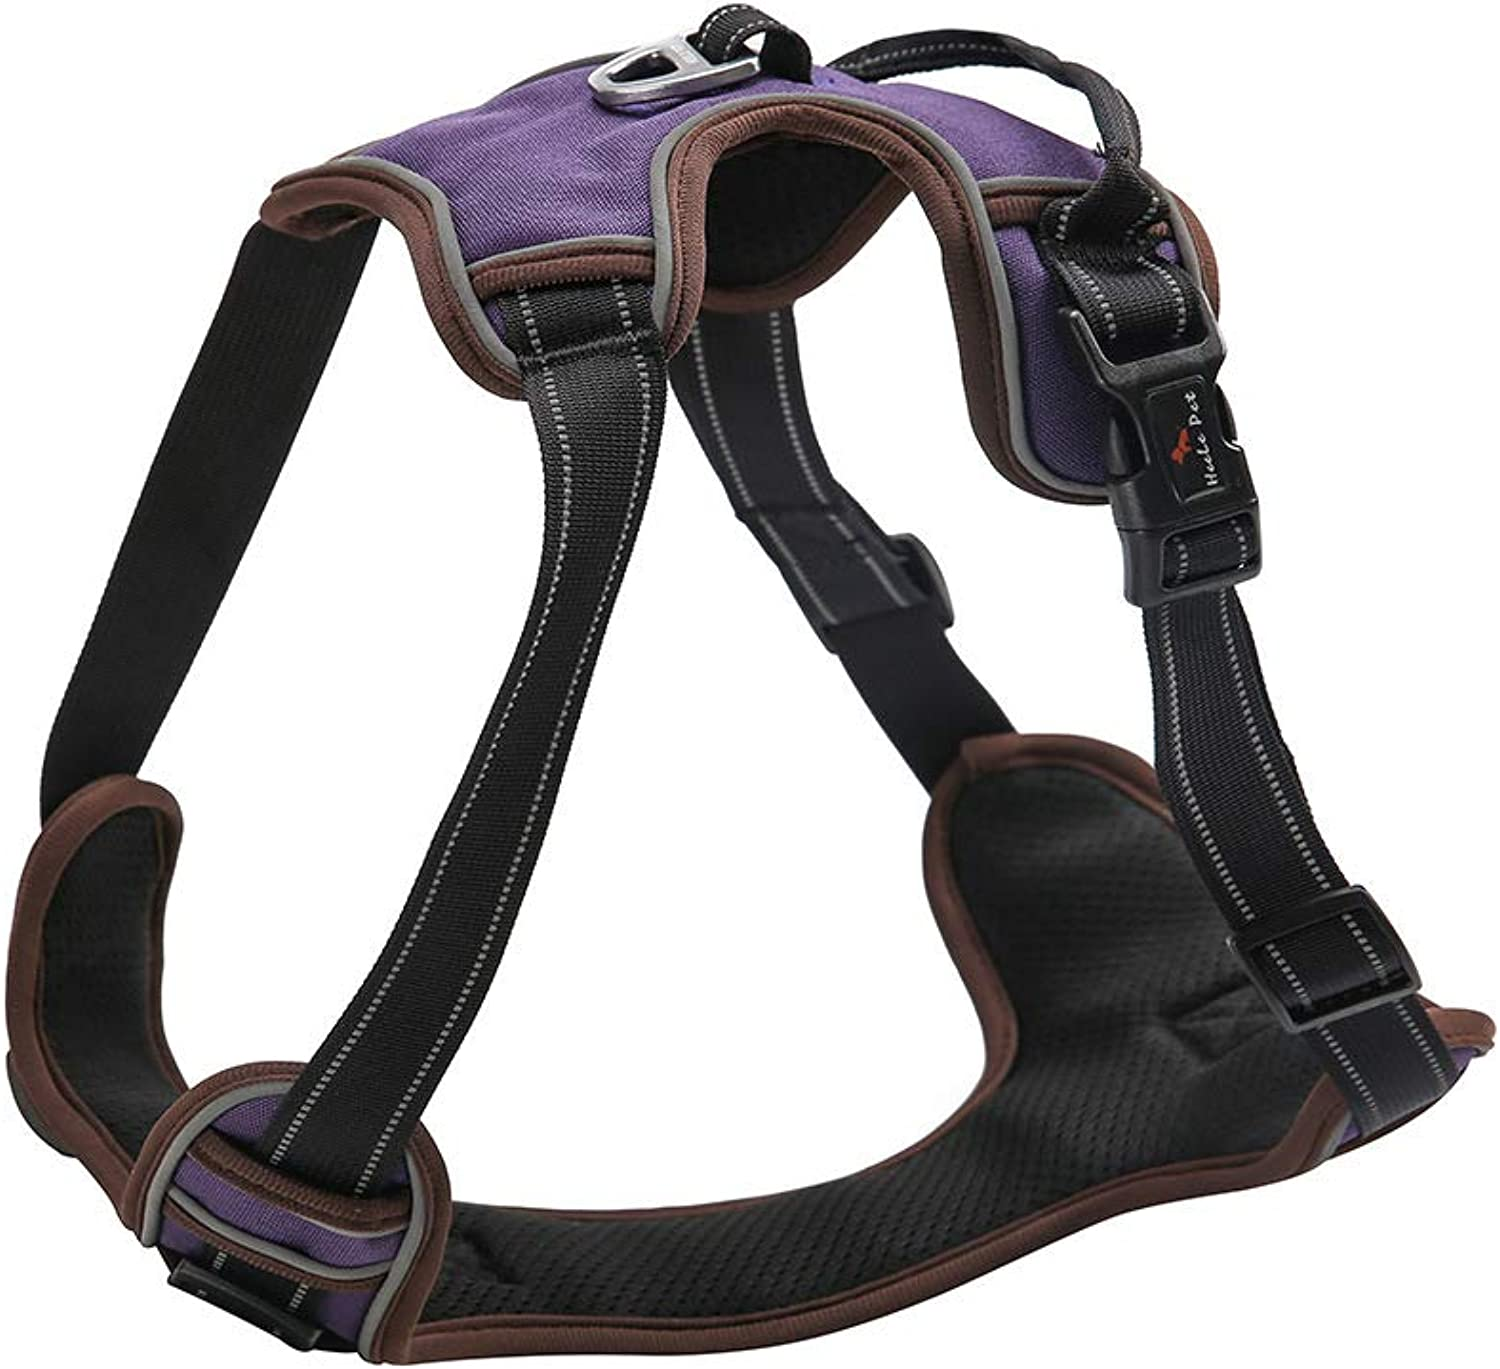 Dog Harness, Easy On and Off with Front and Back Lead Attachments & Control Handle, Size Adjustable,Reflective